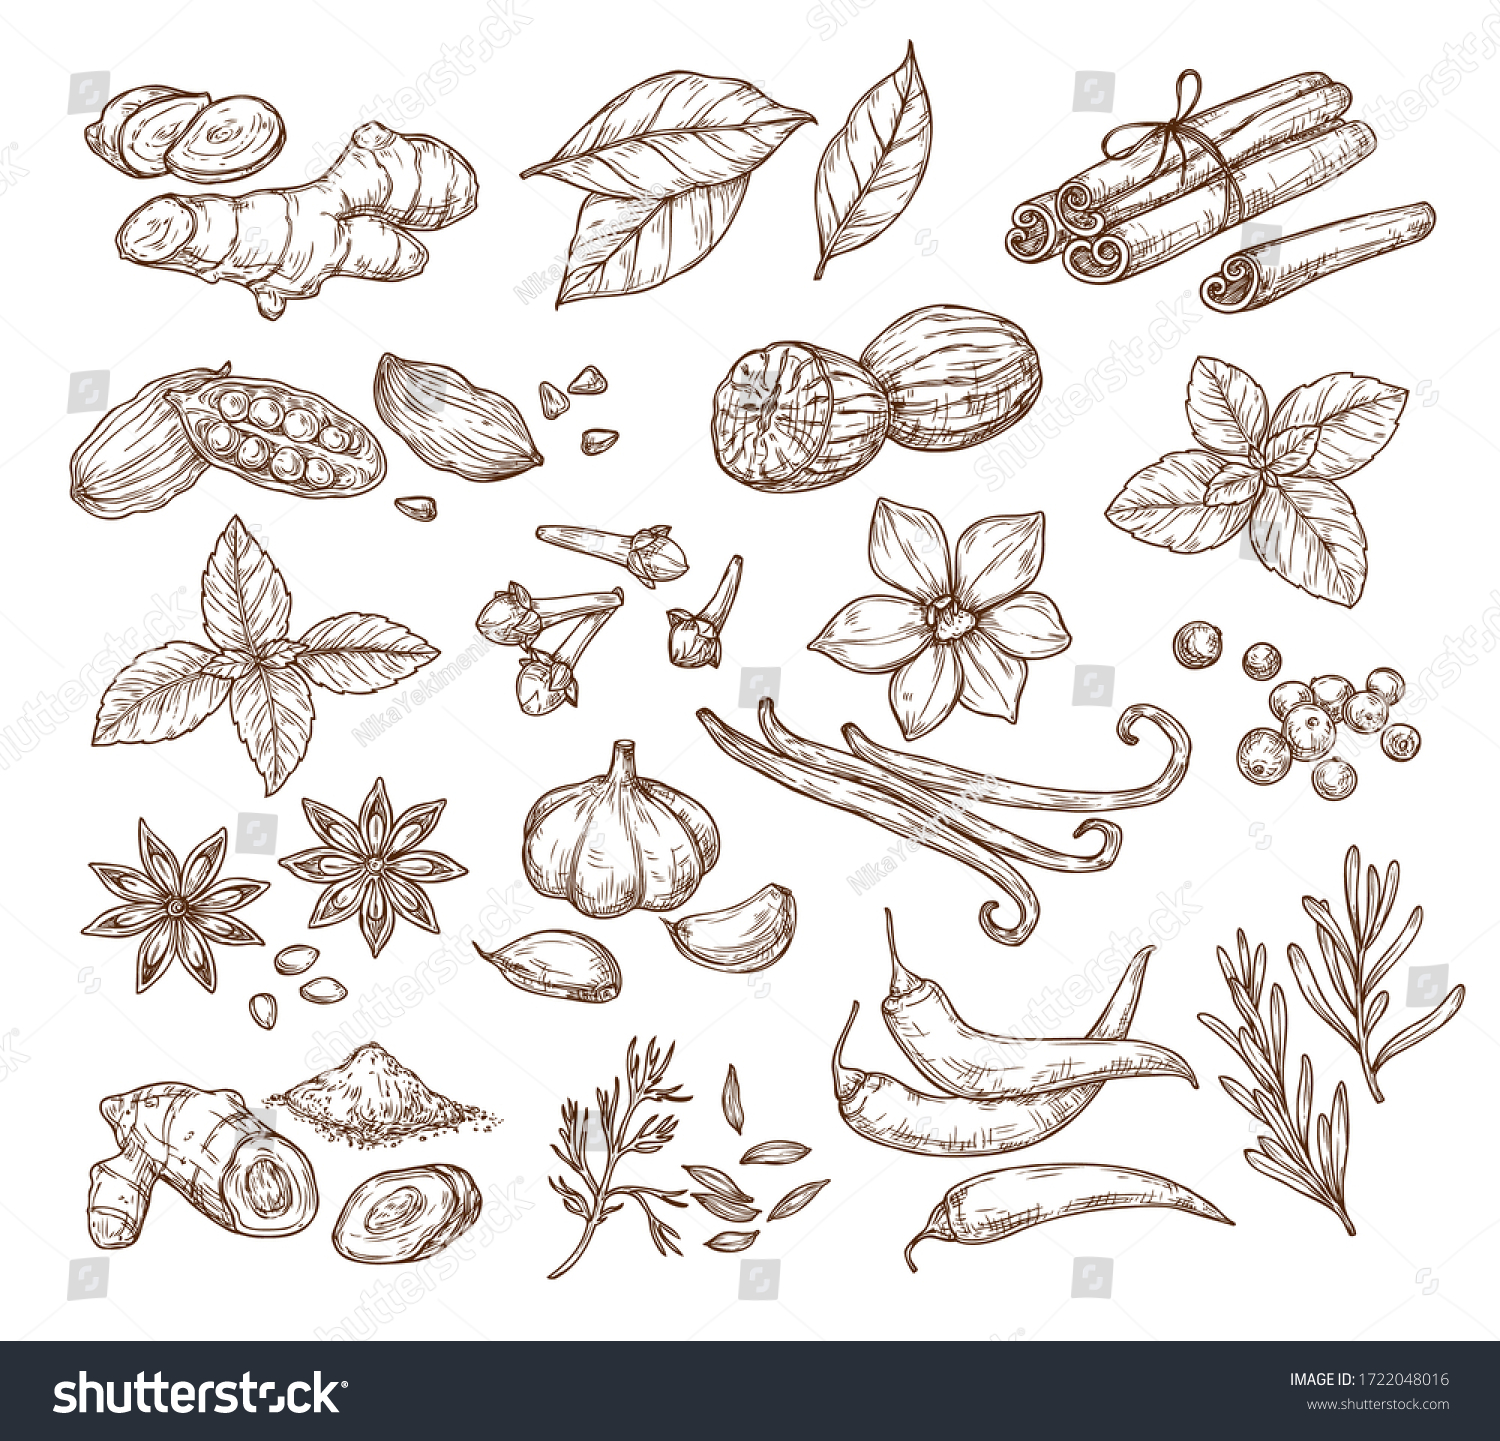 Vector sketch illustration of spices and herbs. Isolated on a white background. Ginger, cinnamon, vanilla, anise, basil, rosemary, turmeric. Use to create menus, packaging, patterns, prints. #1722048016